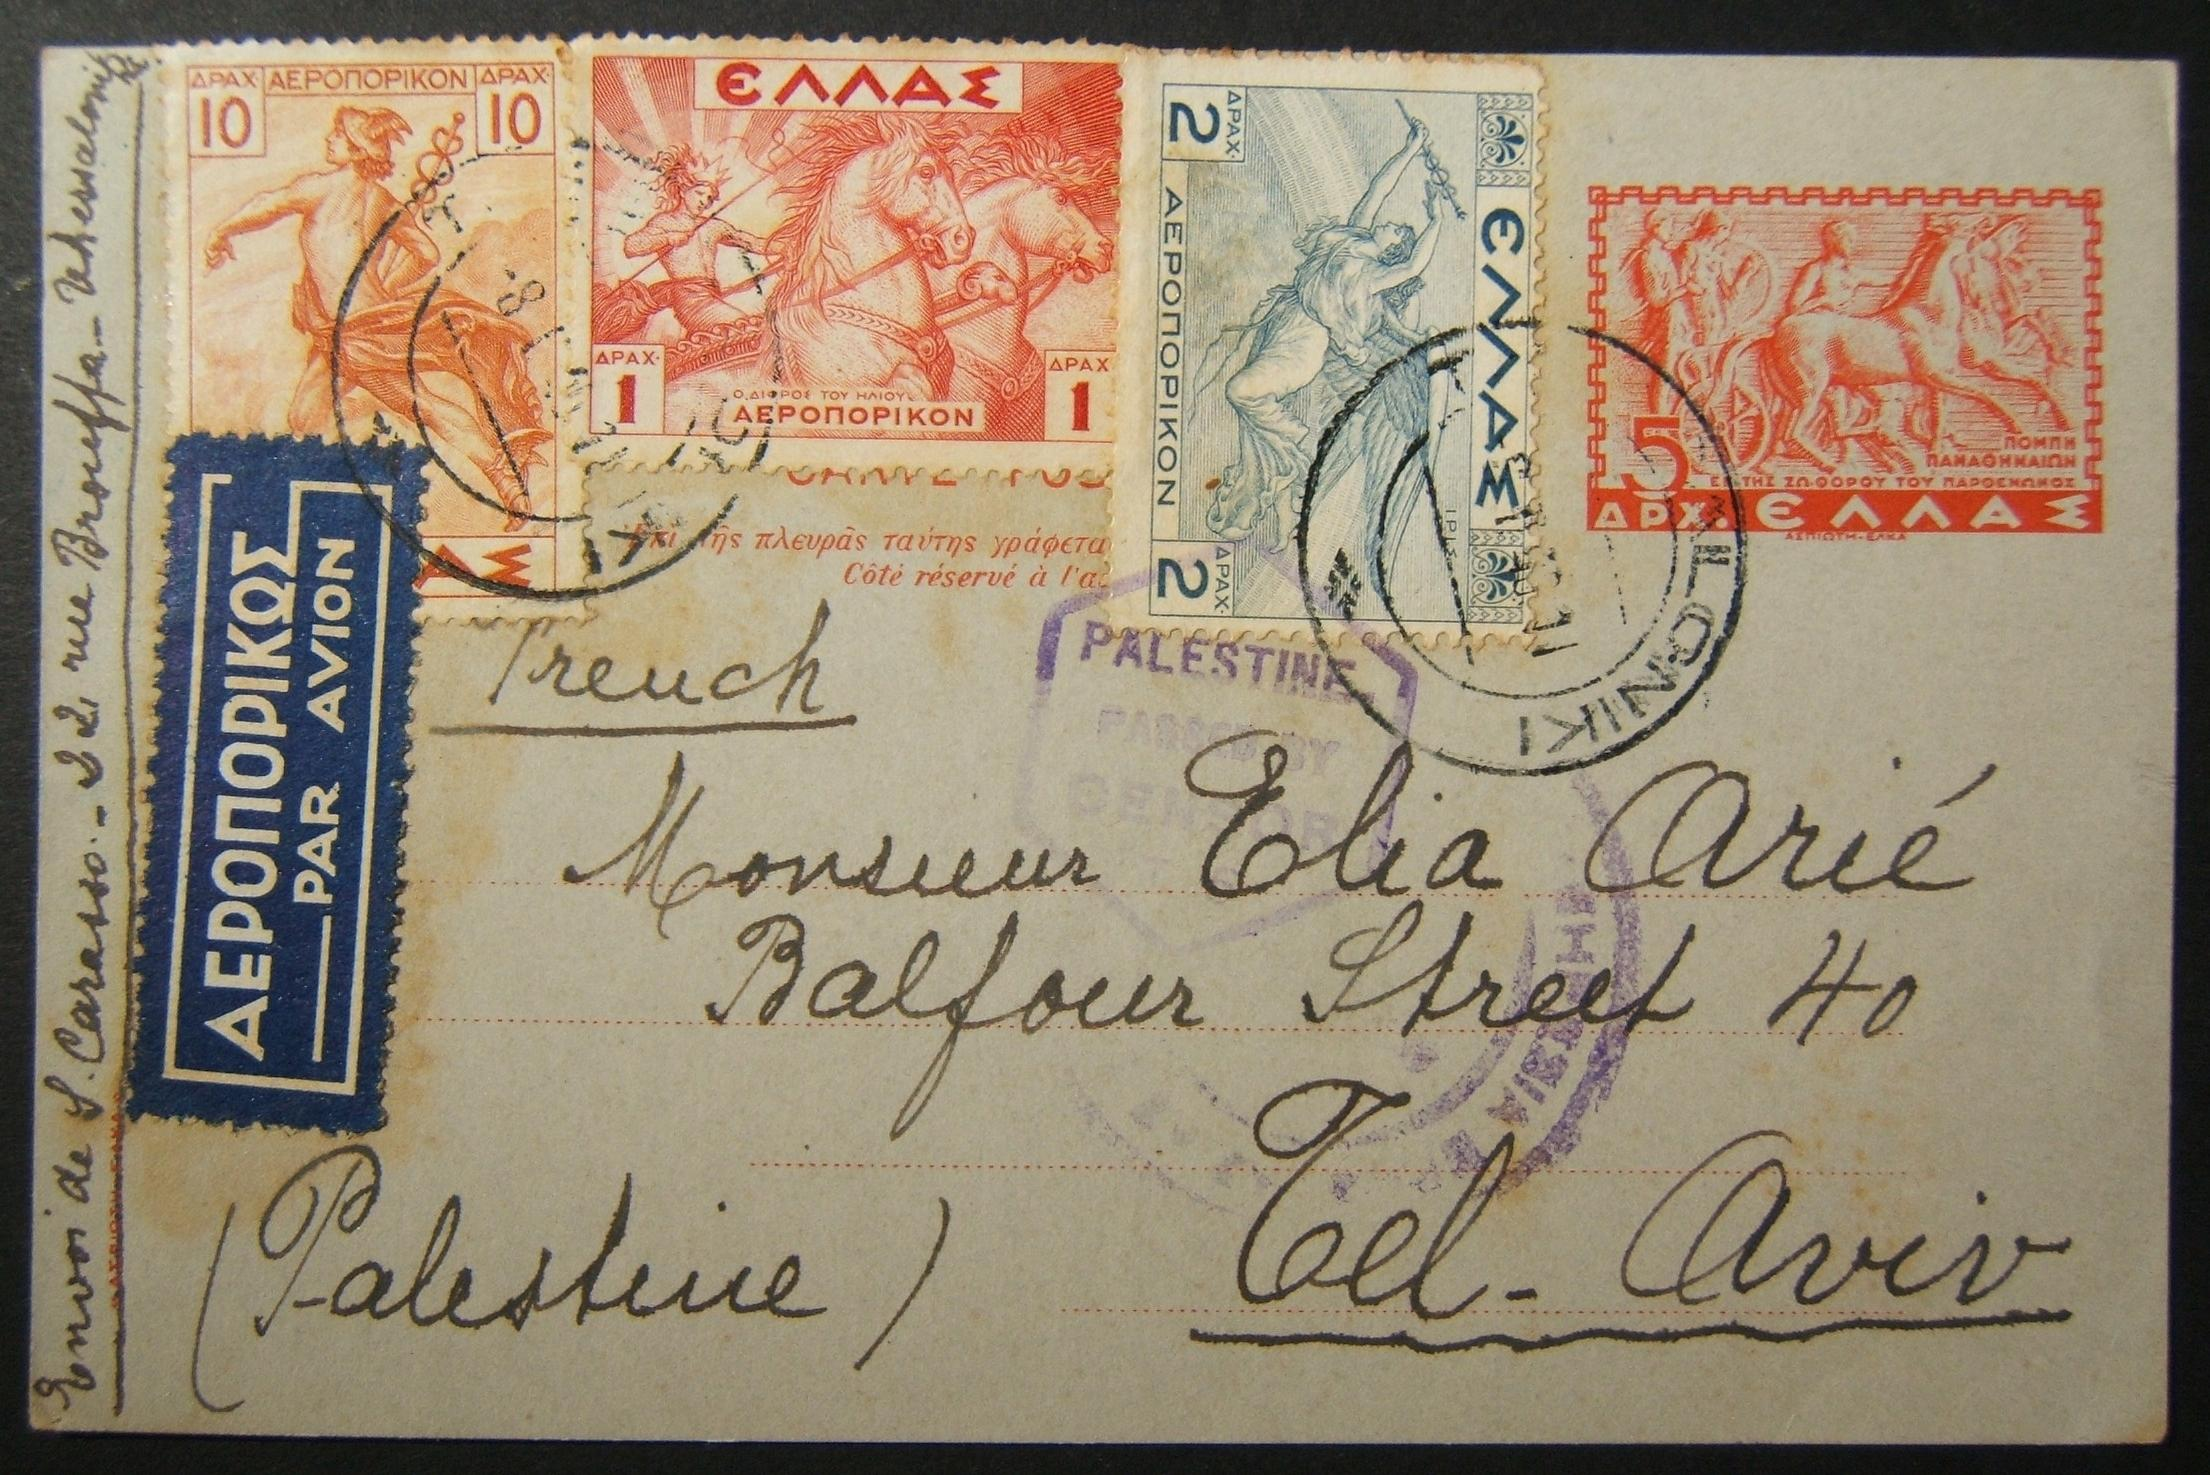 2/1940 WWII airmail from Greece to TEL AVIV, censored & passed exchange control